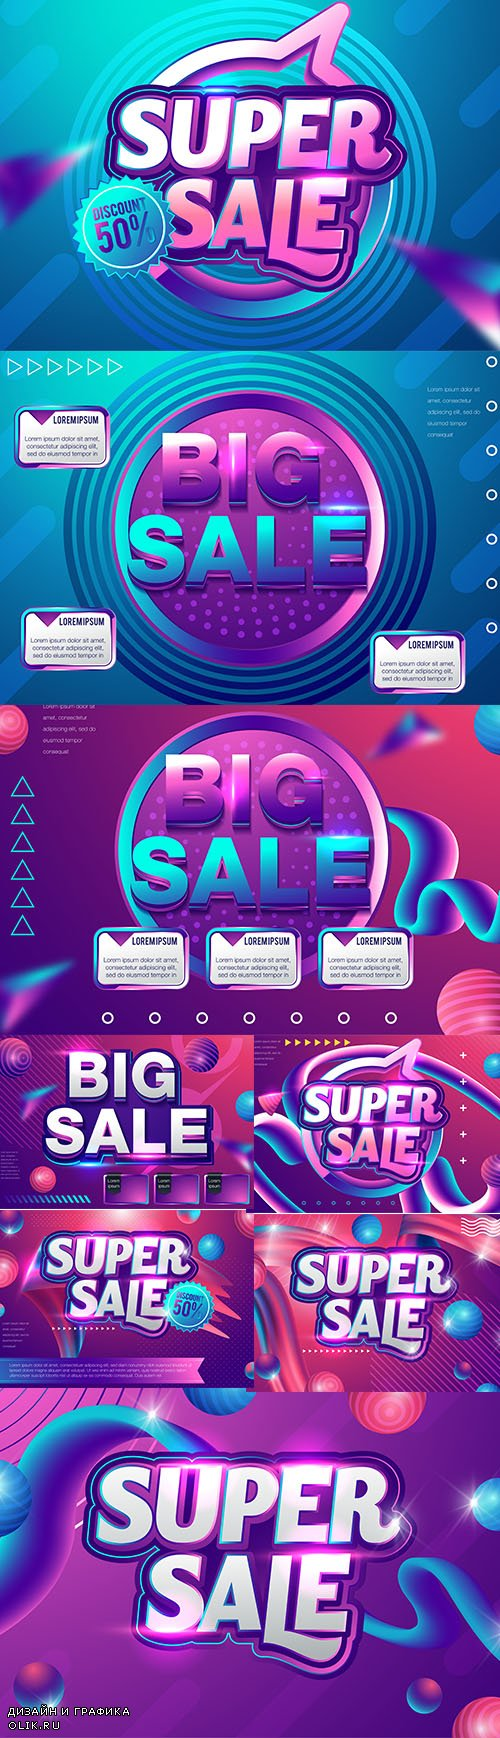 Big Sale Discoun Layout Premium Illustrations Set